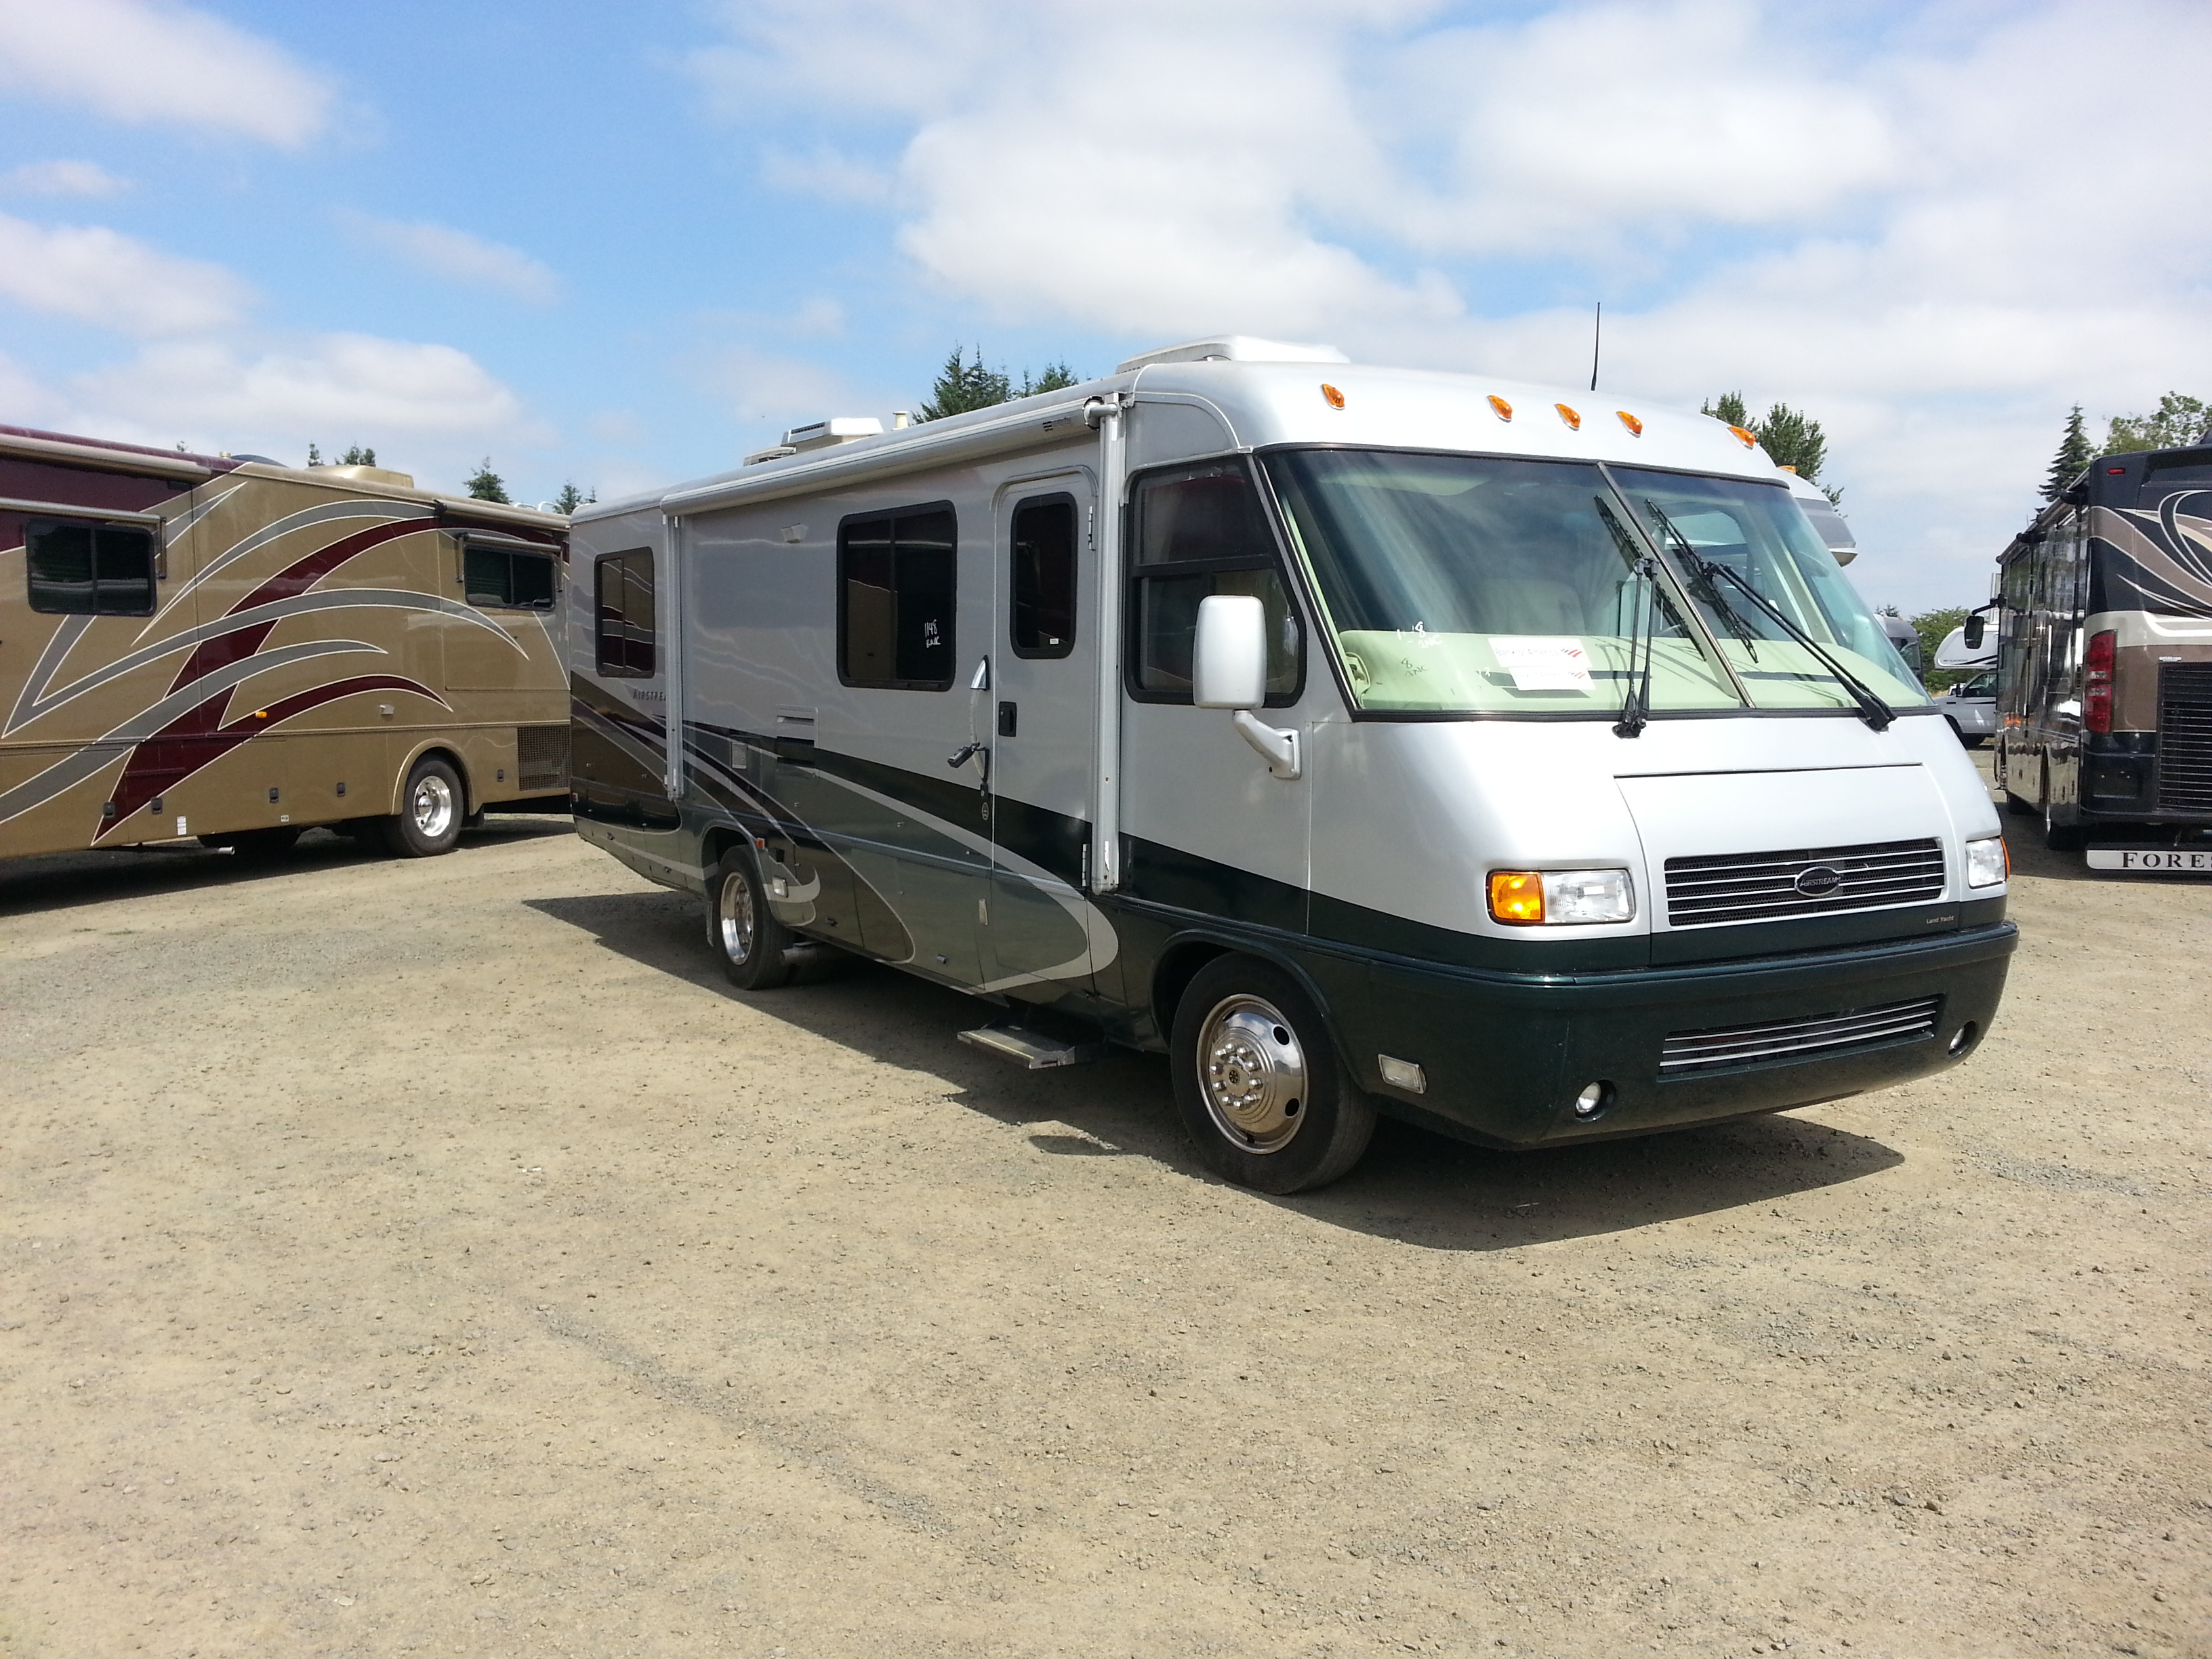 Photo 2005 Airstream LAND YACHT 30SLD $ 43500     Get Financing as low as 469.80mo      Get Financing as low as 469.80mo